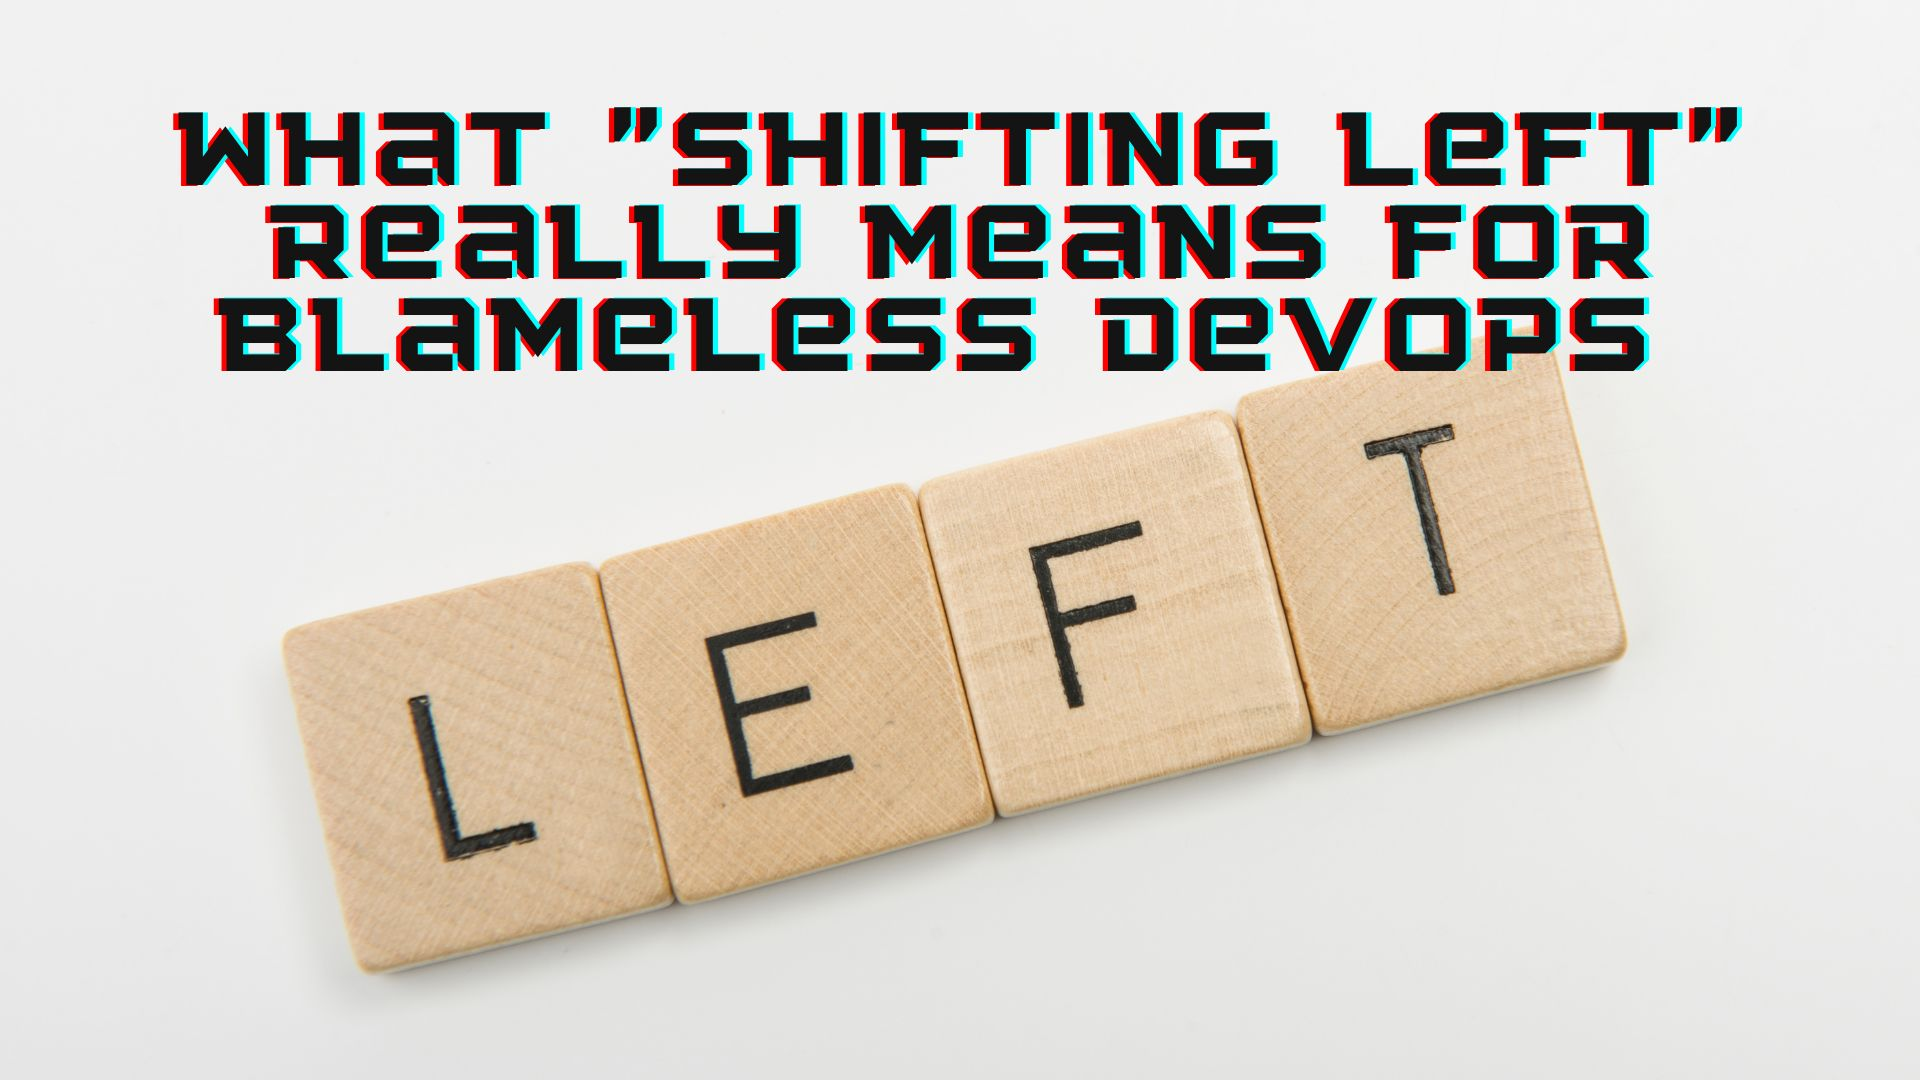 /what-shifting-left-in-software-really-means-for-blameless-devops-s42135s6 feature image